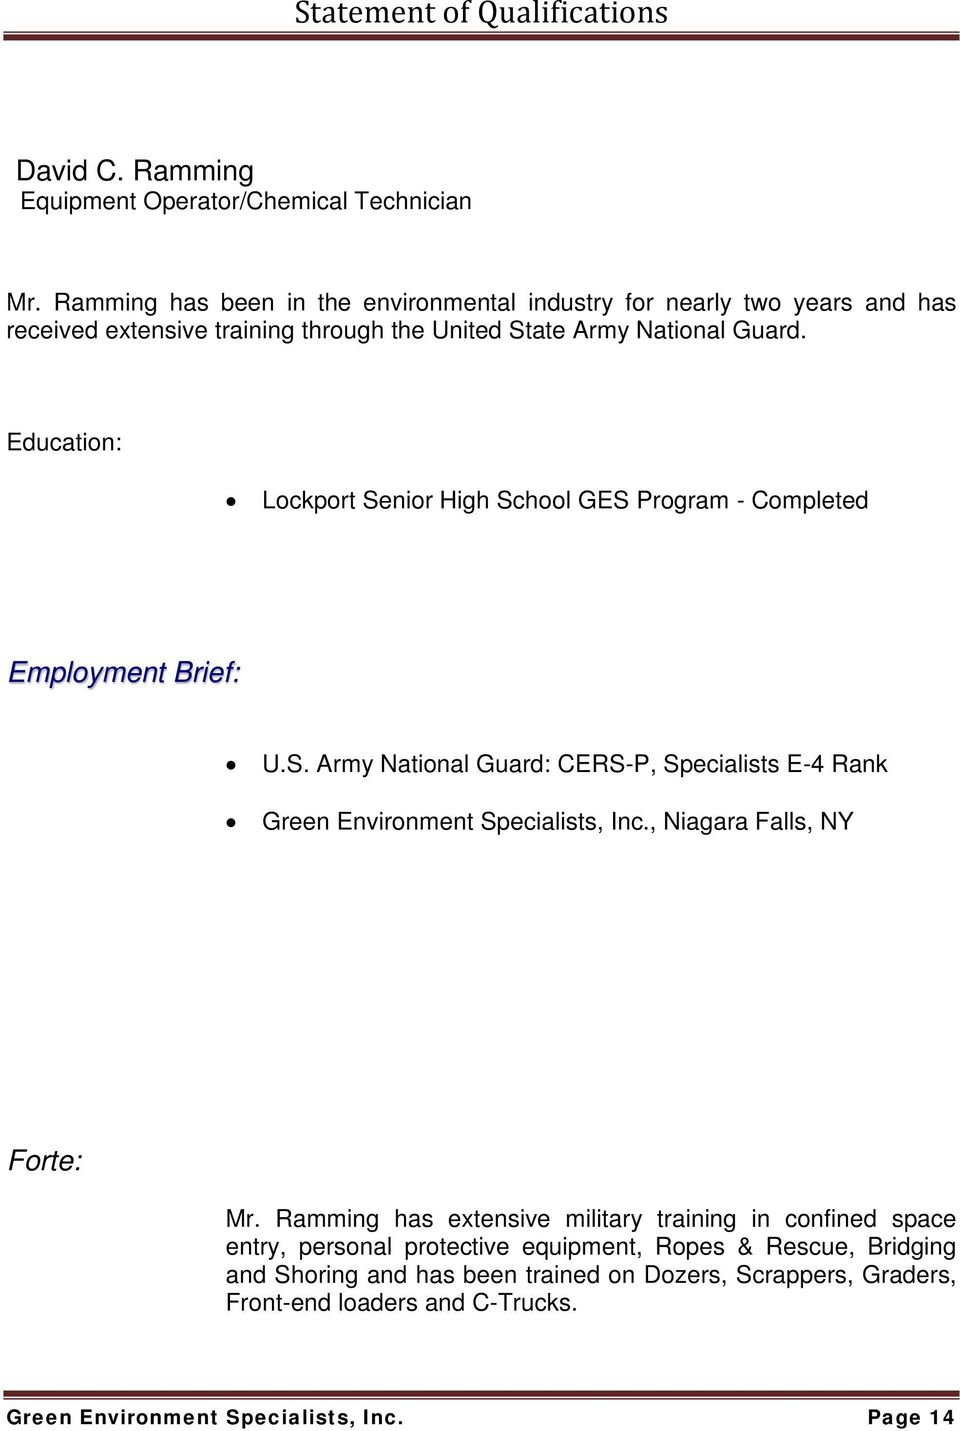 Education: Lockport Senior High School GES Program - Completed Employment Brief: U.S. Army National Guard: CERS-P, Specialists E-4 Rank Green Environment Specialists, Inc.